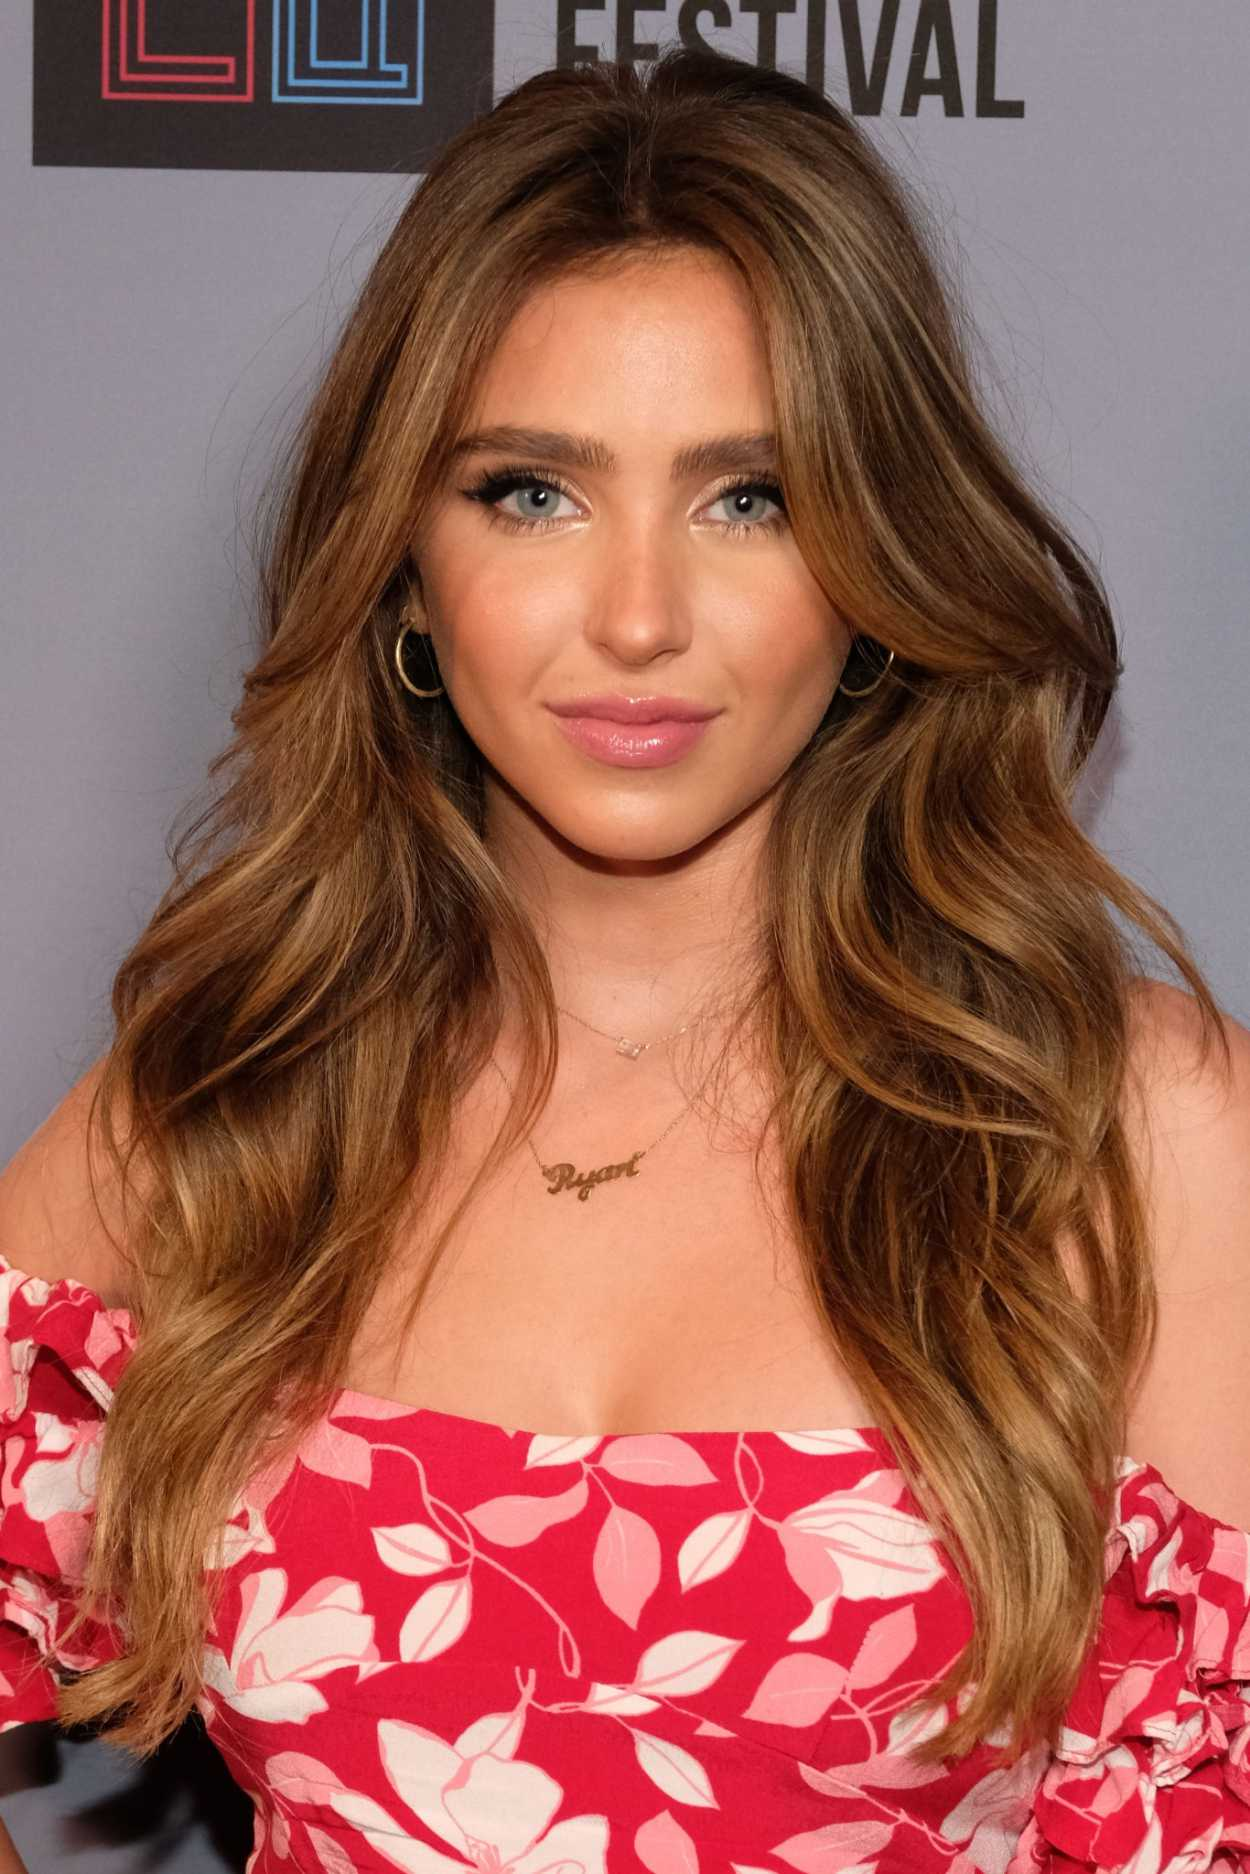 Ryan Newman Attends the Sum of Us Screening in Los Angeles